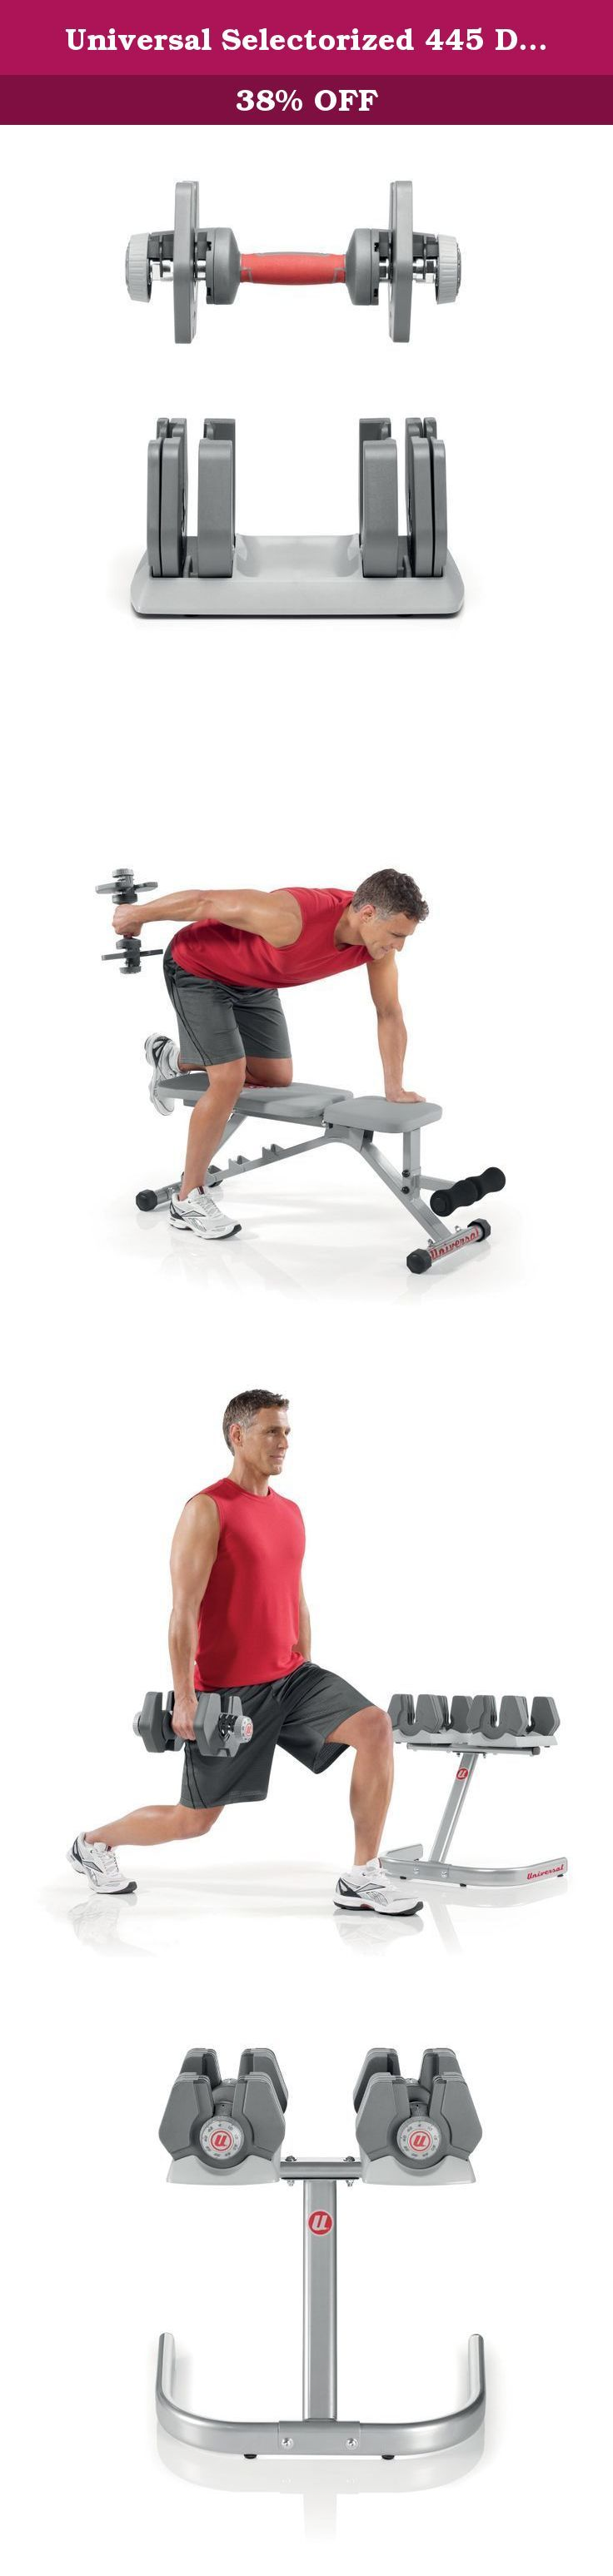 Universal Selectorized 445 Dumbbells and Stand. Offering an ideal combination of performance and space-saving ingenuity, the Universal Power Pak dumbbell and stand set is a great choice for athletes and beginning weight trainers alike. The Power Pak dumbbells--which adjust from 4 to 45 pounds in 5-pound increments--work just like a weight stack at the gym. When you want to change weights, simply move the weight selector dial to the appropriate setting. As you lift the handle, the weights...